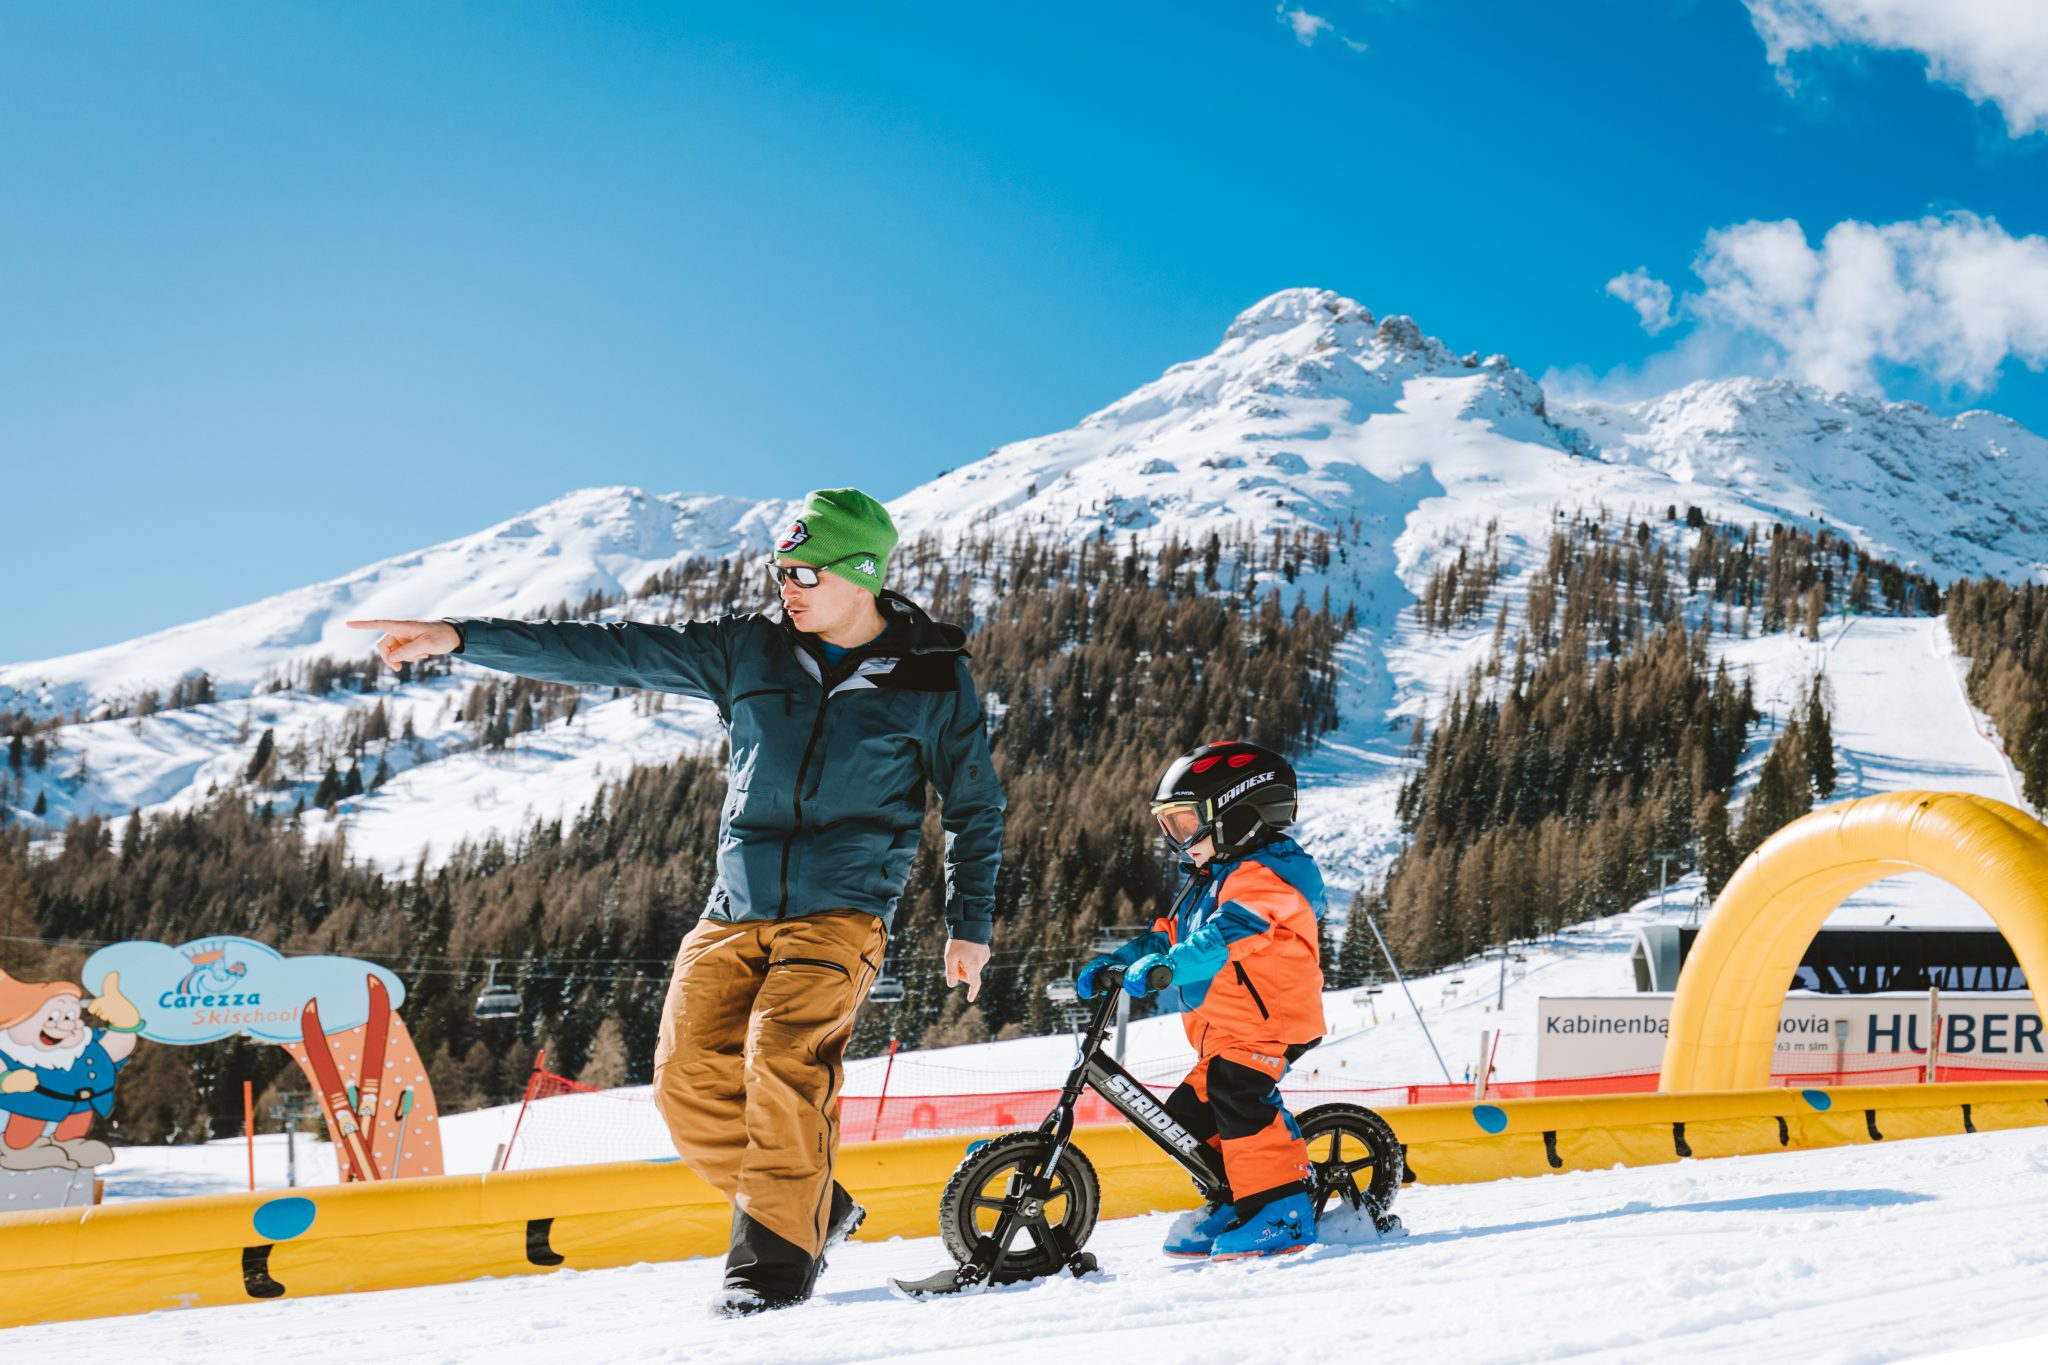 Fun during the Dolomites skiing week for kids in Carezza, Dolomites